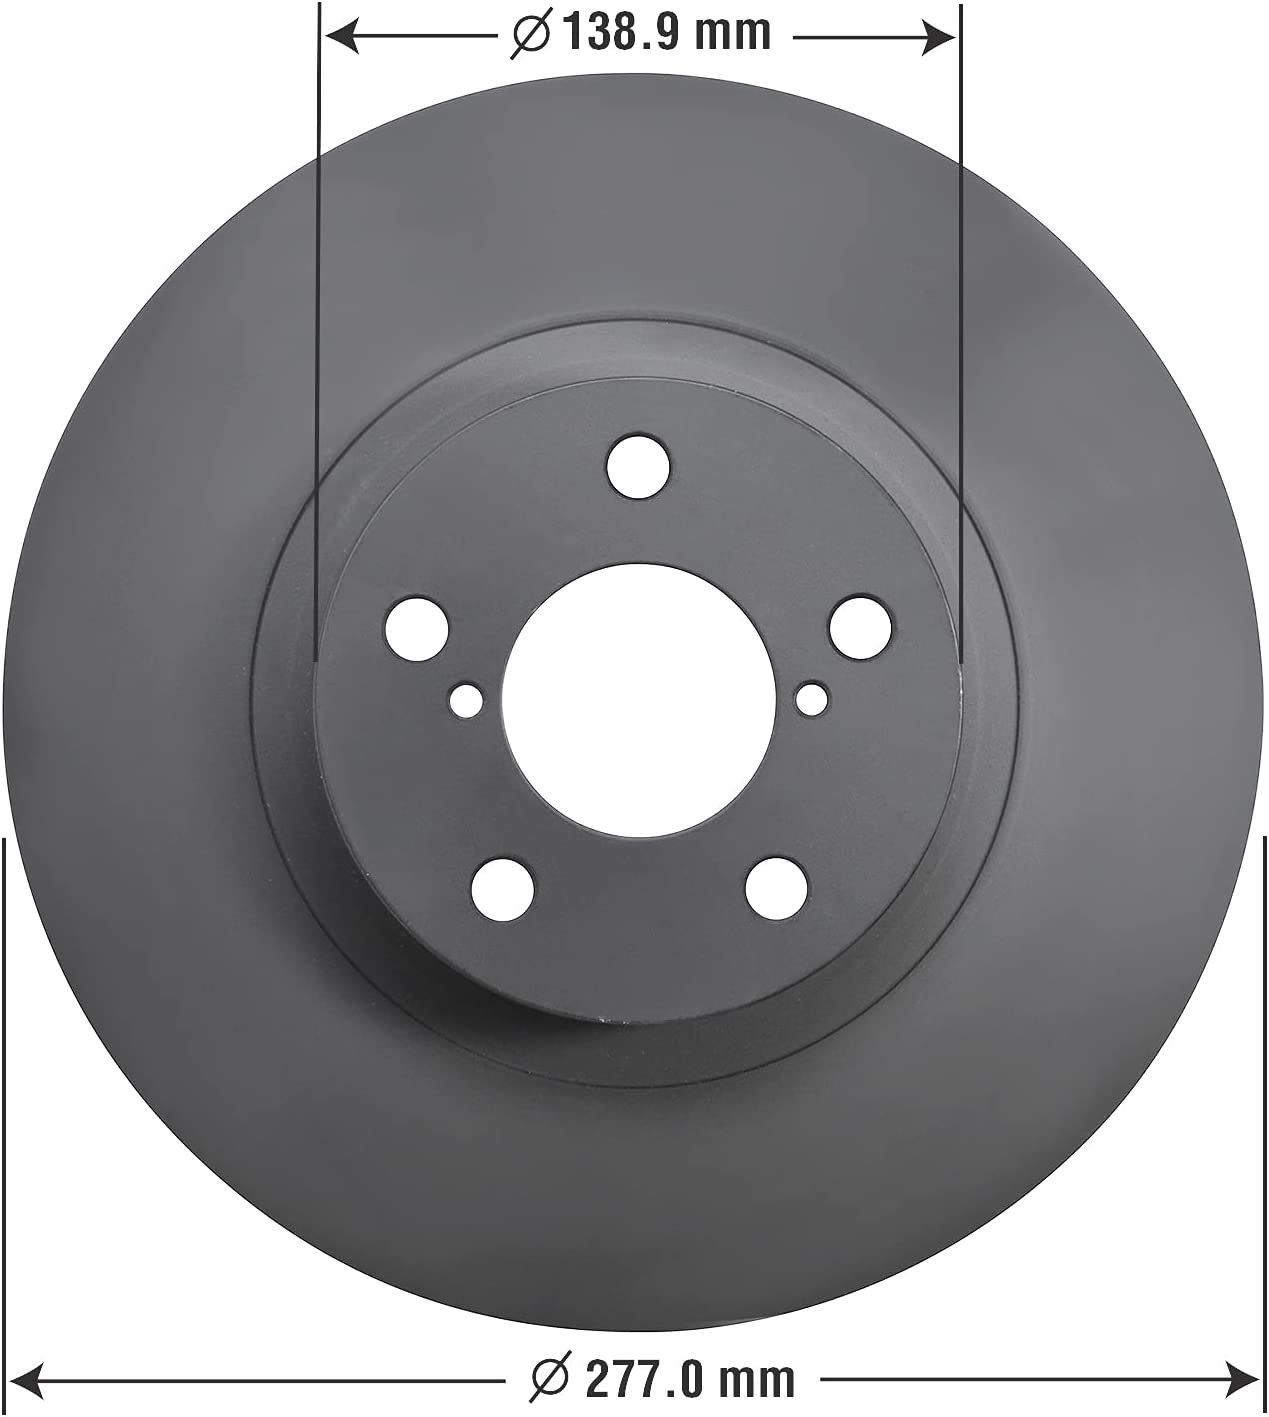 Goodyear Brakes 212814GY Premium AntiOx Classic Front shop Brake Coated Roto